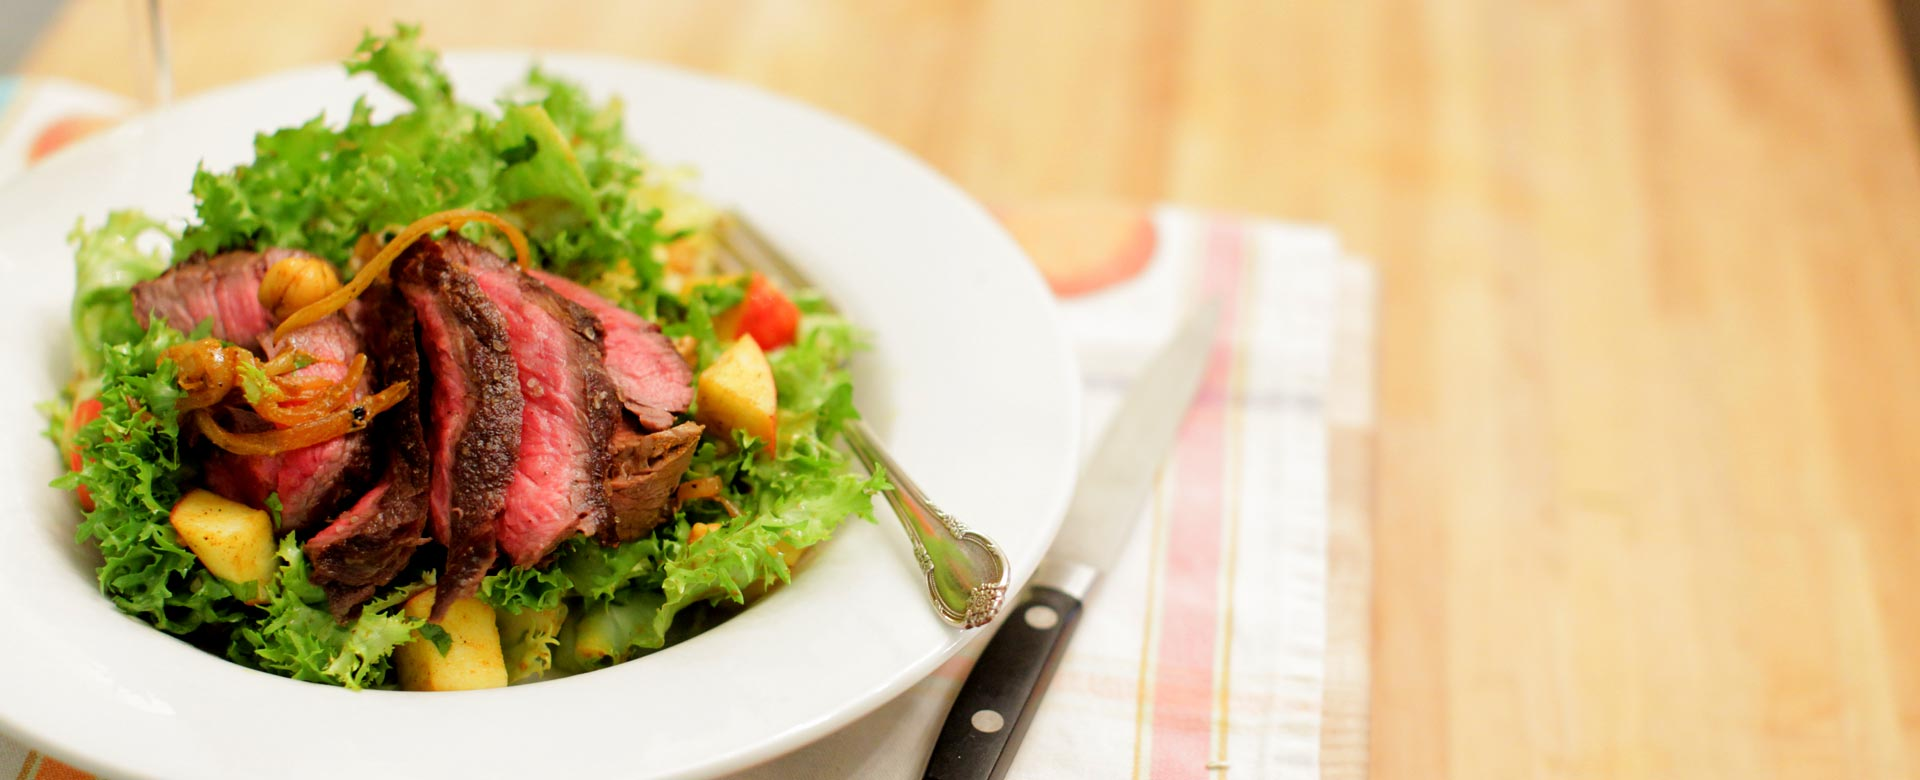 Steak-salad